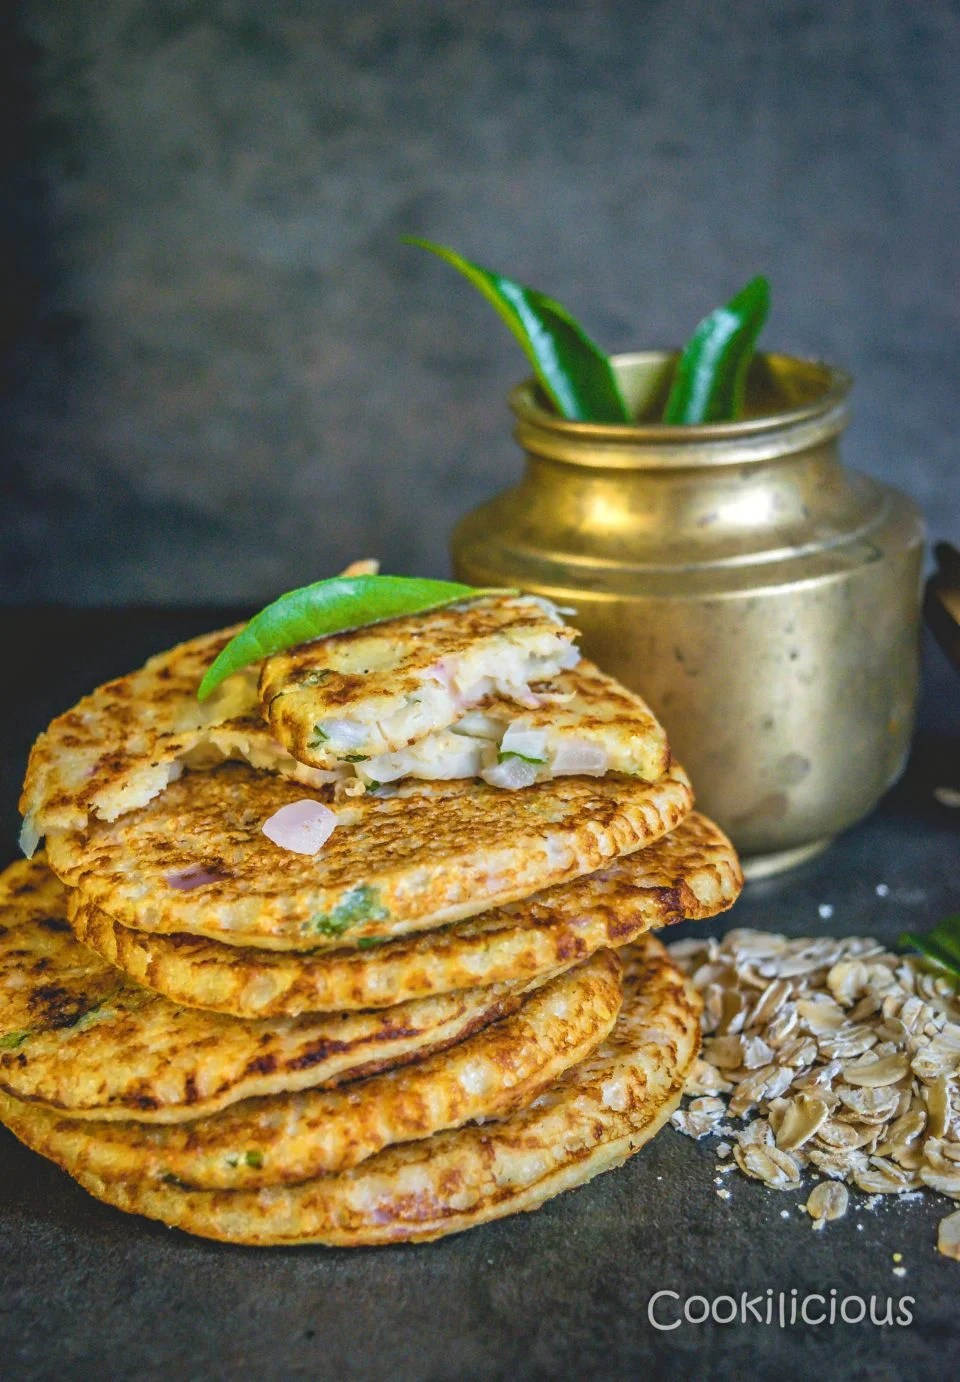 Healthy Oats & Veggie Mini Pancakes stacked up with a brass container in the background